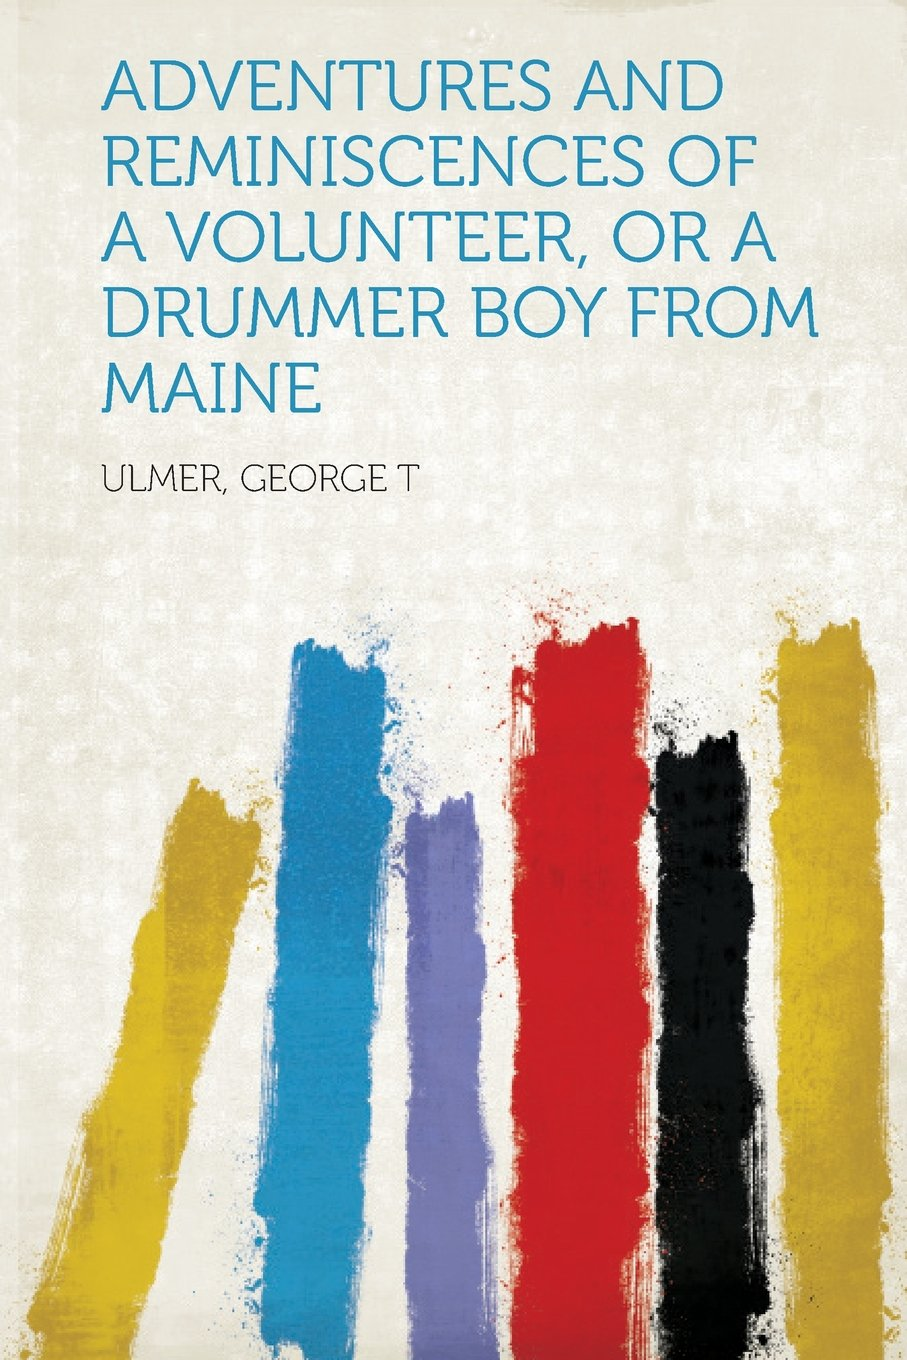 Adventures and Reminiscences of a Volunteer, or A Drummer Boy from Maine